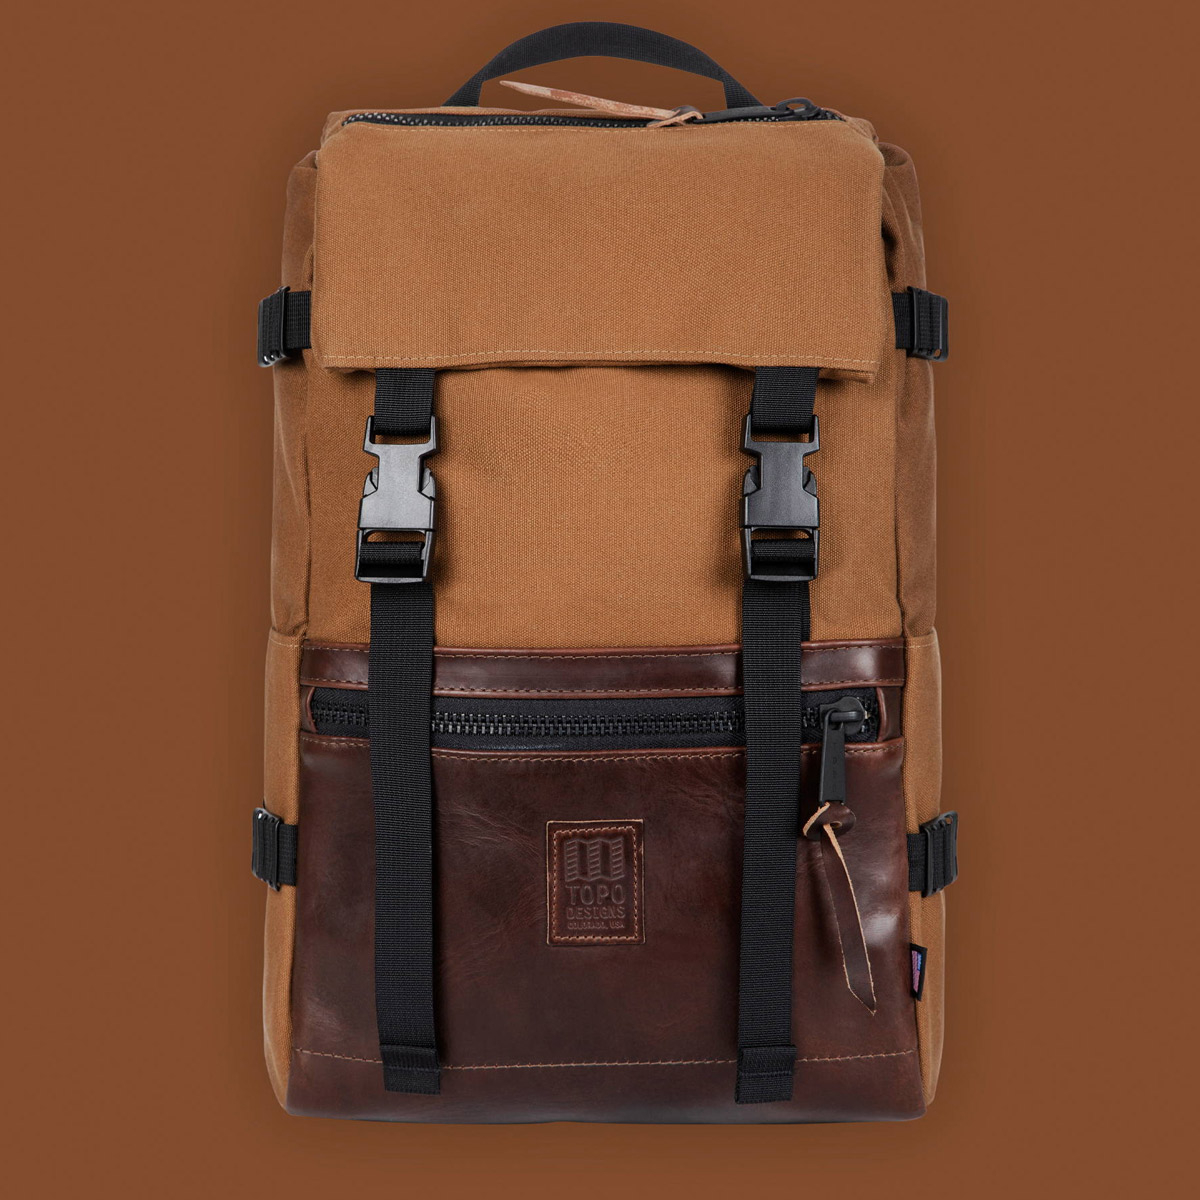 Topo Designs Rover Pack Heritage Dark Khaki Canvas/Brown Leather, timeless backpack with great functionalities